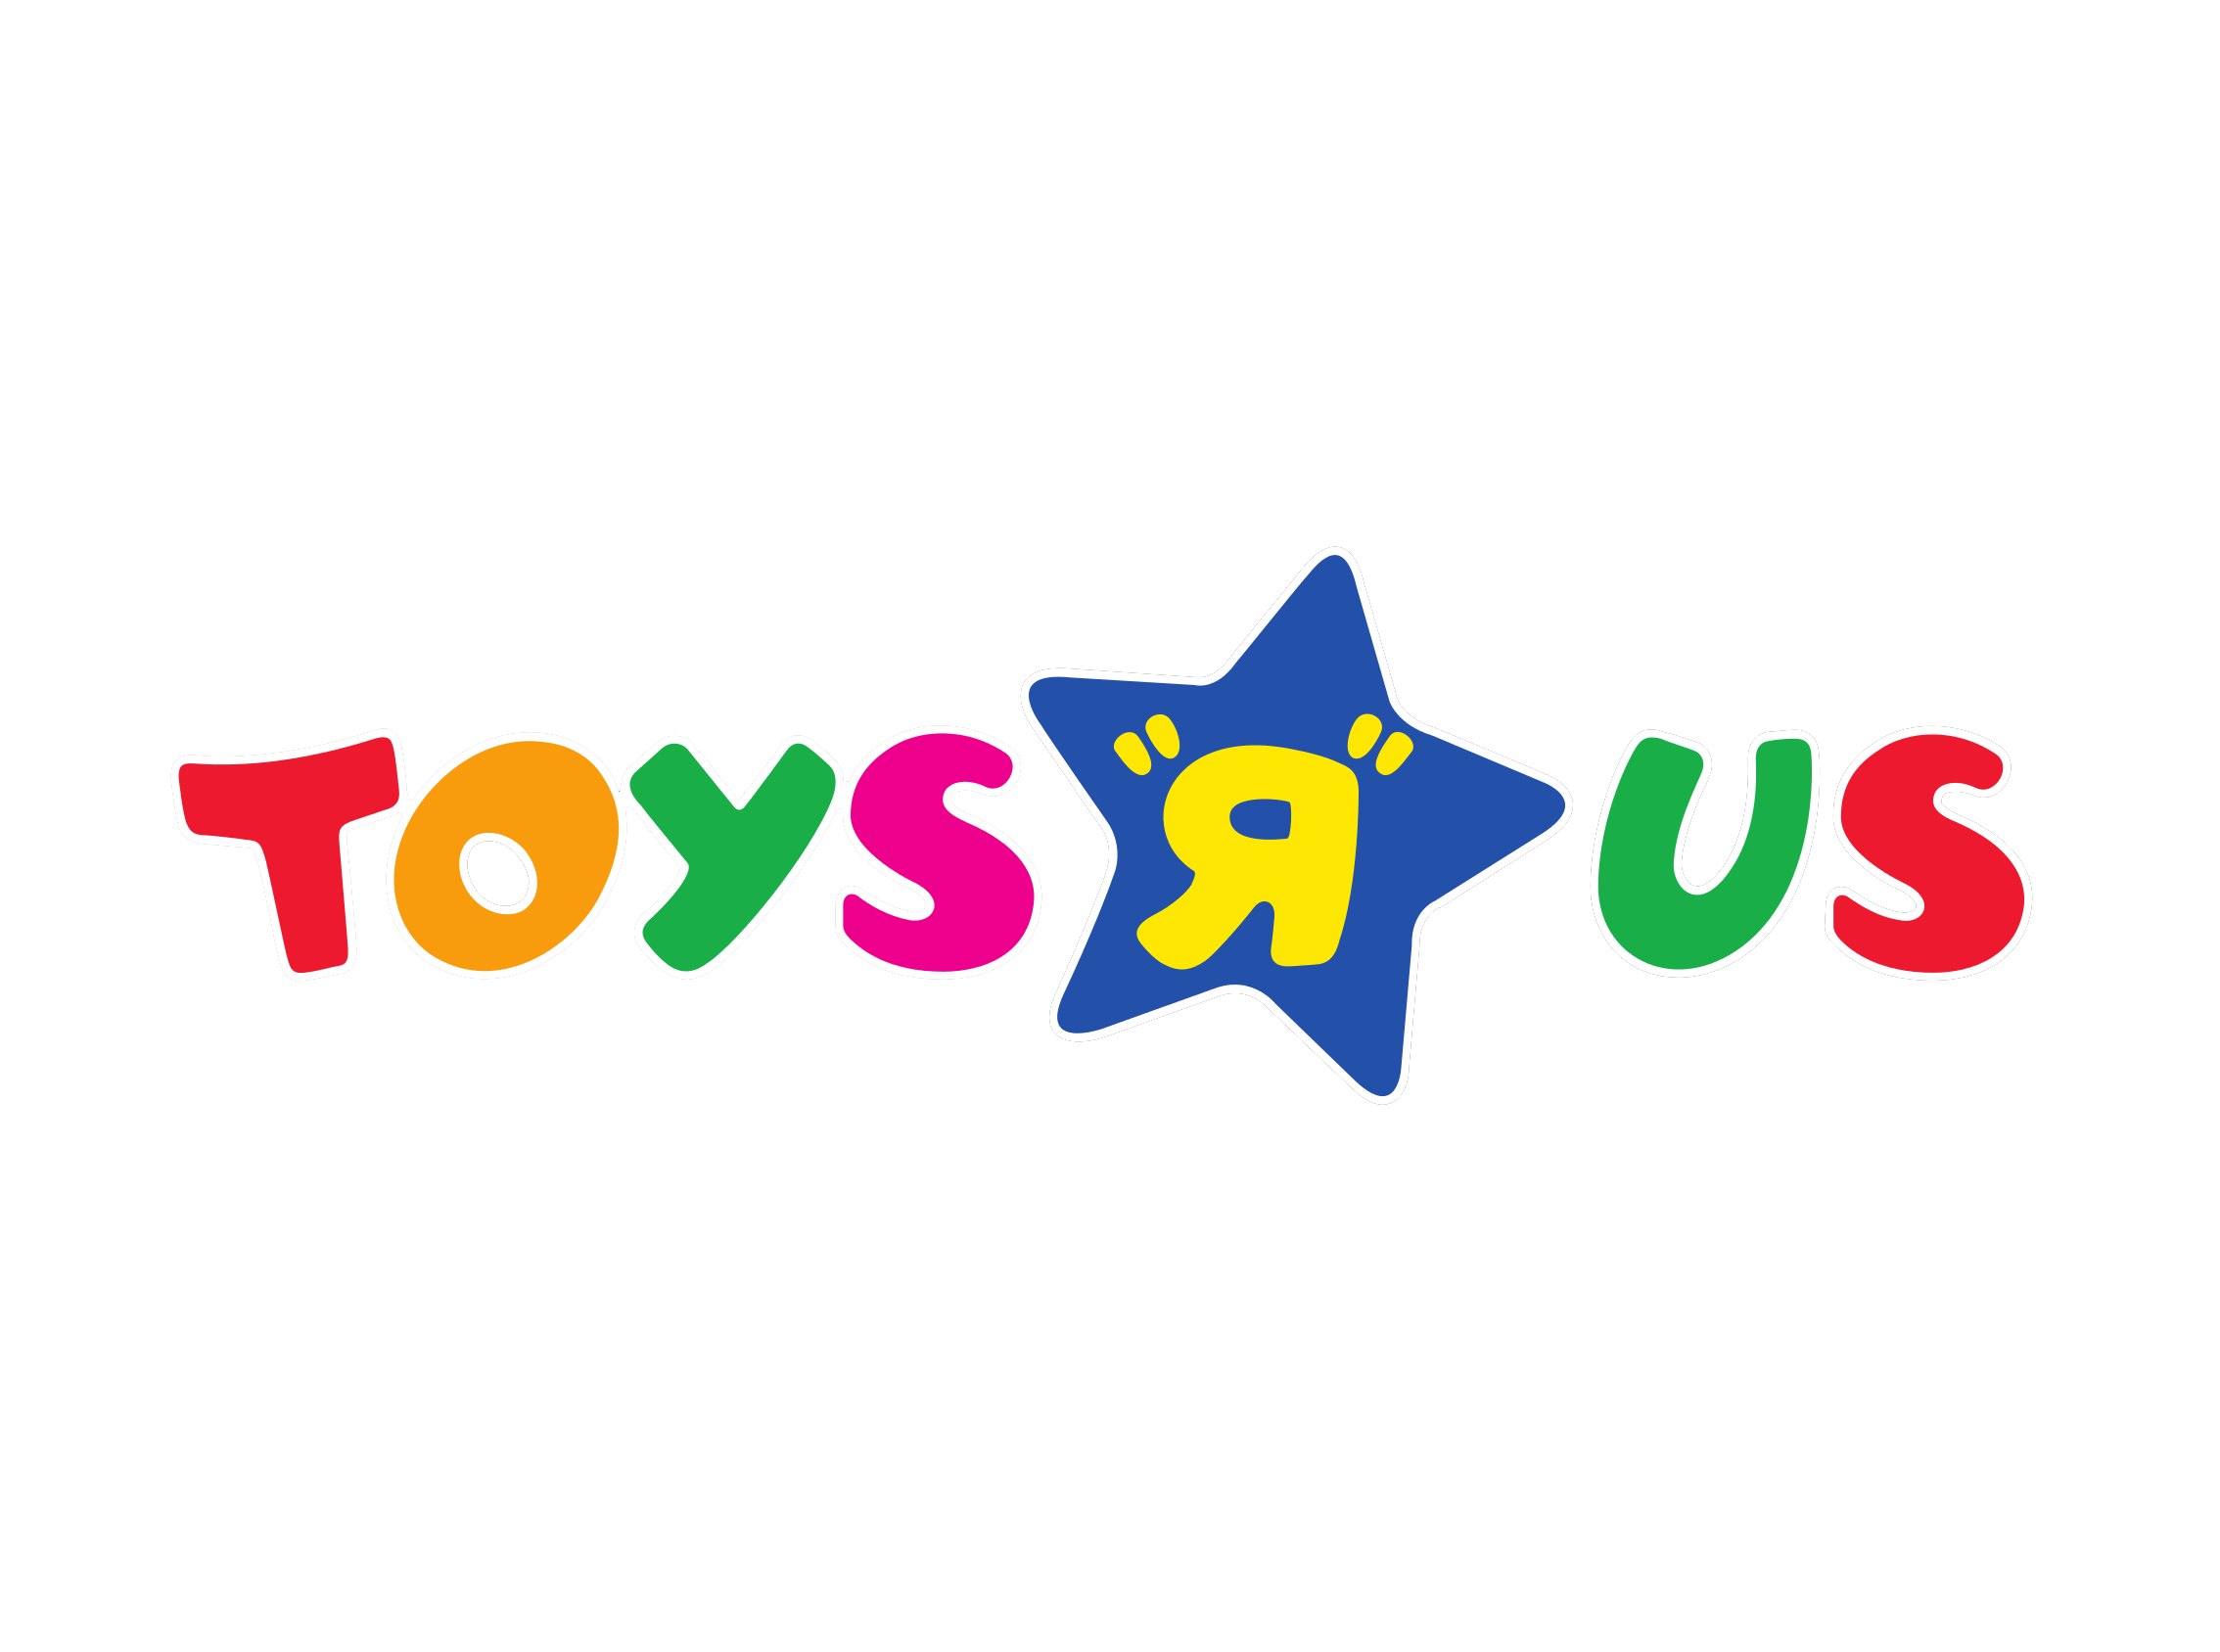 Toys R Us Küchengeräte Toys R Us Files For Chapter 11 Bankruptcy - Tokunation